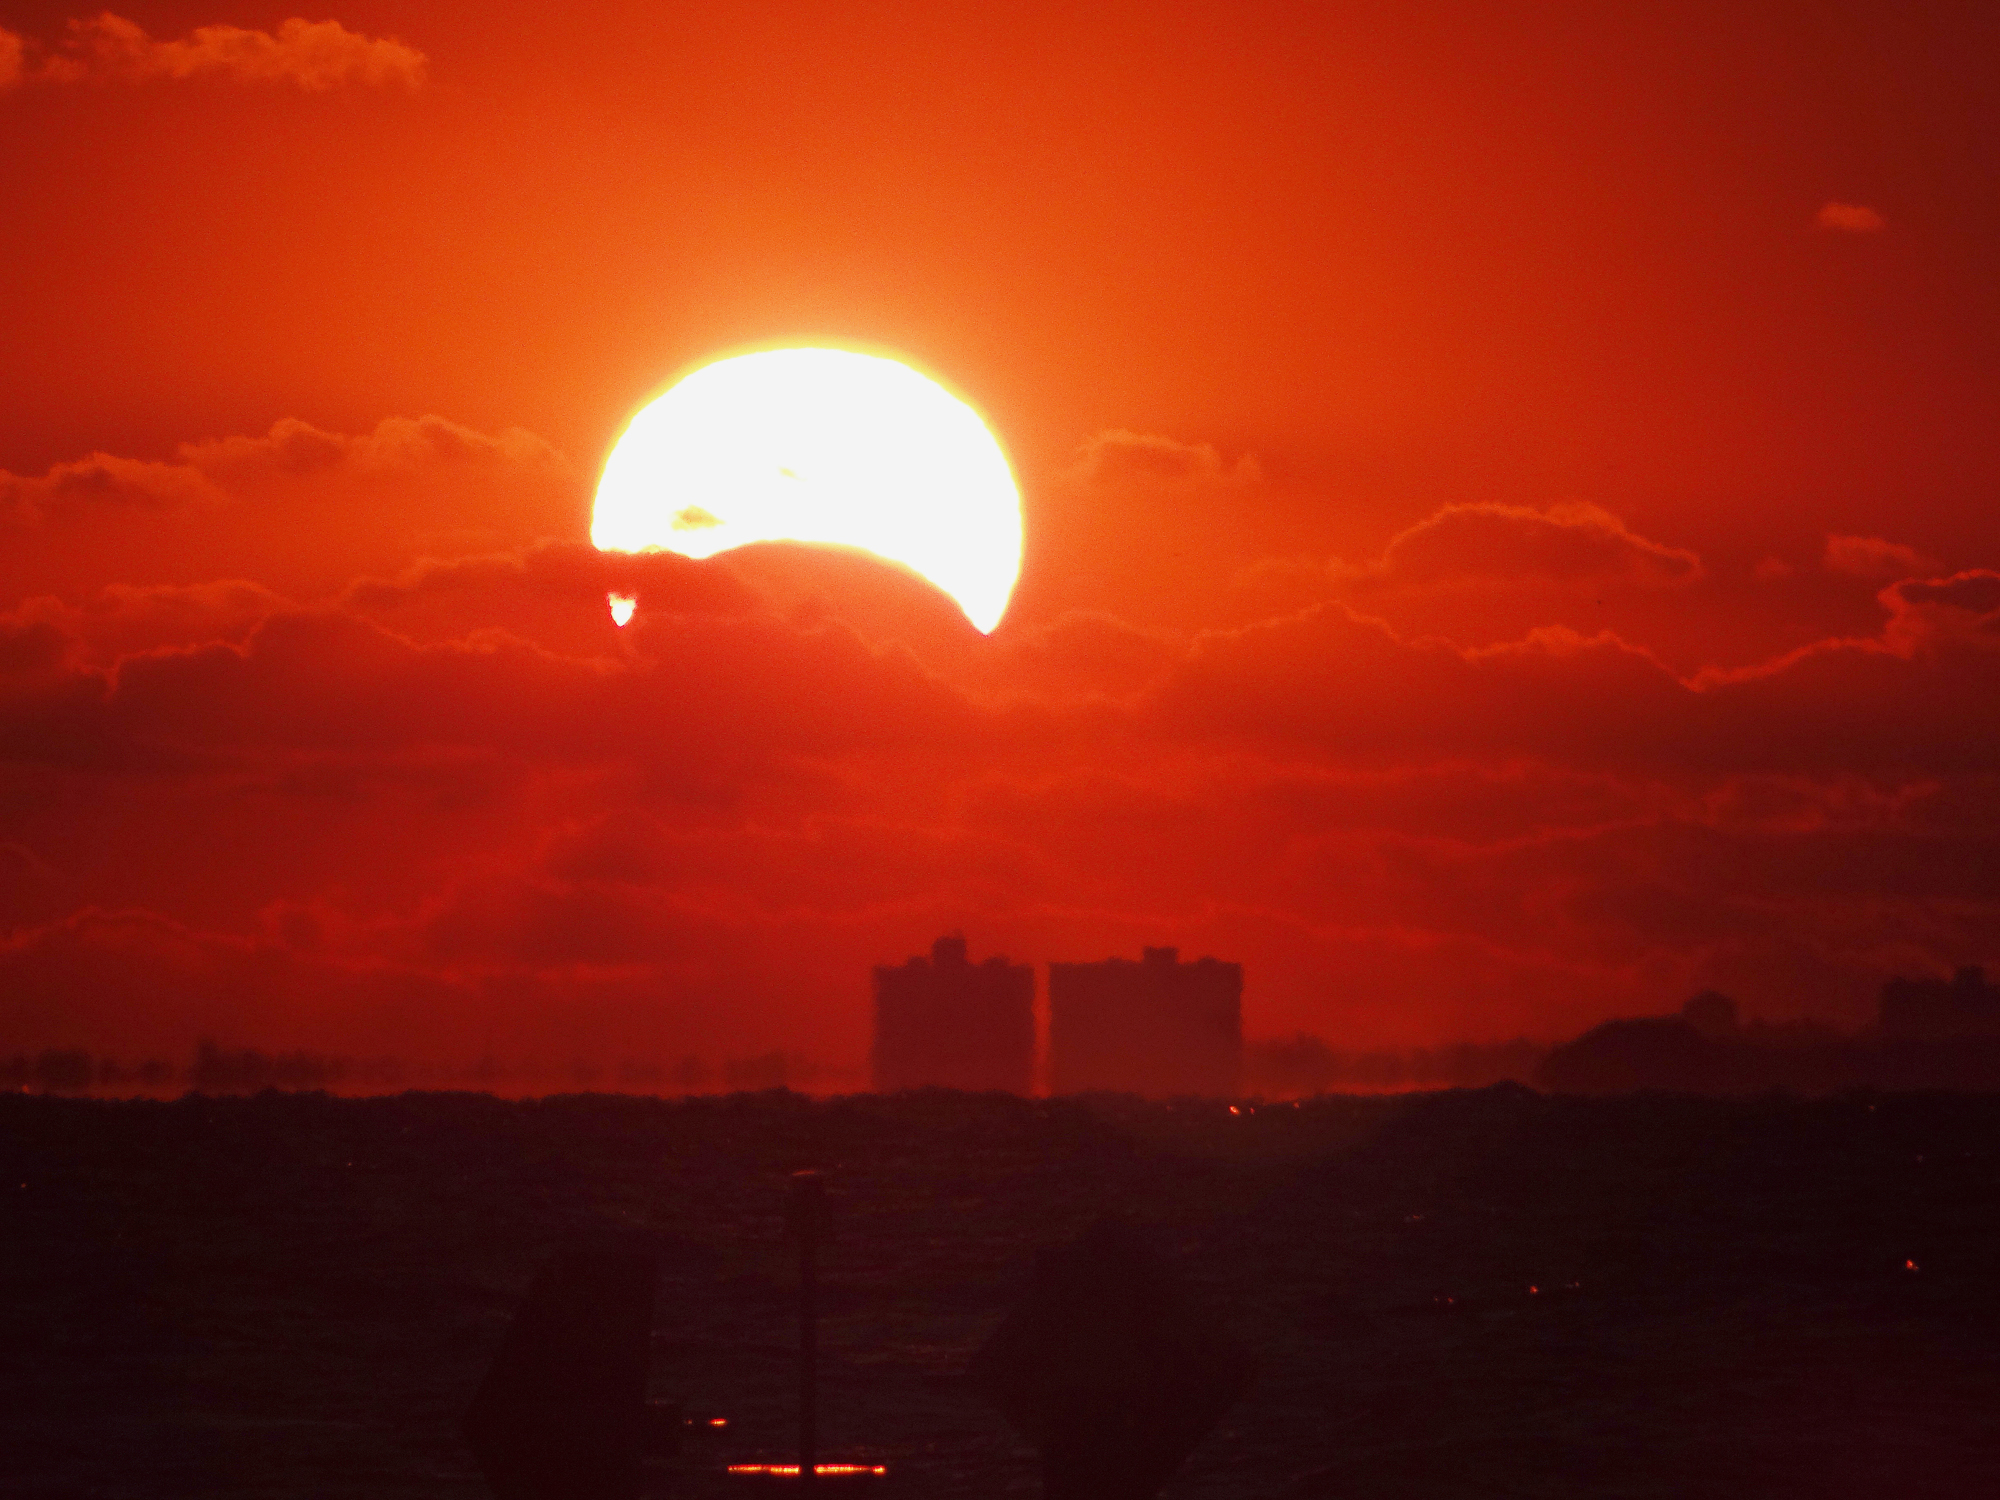 Sunrise Solar Eclipse by James Currie: Nov. 3, 2013